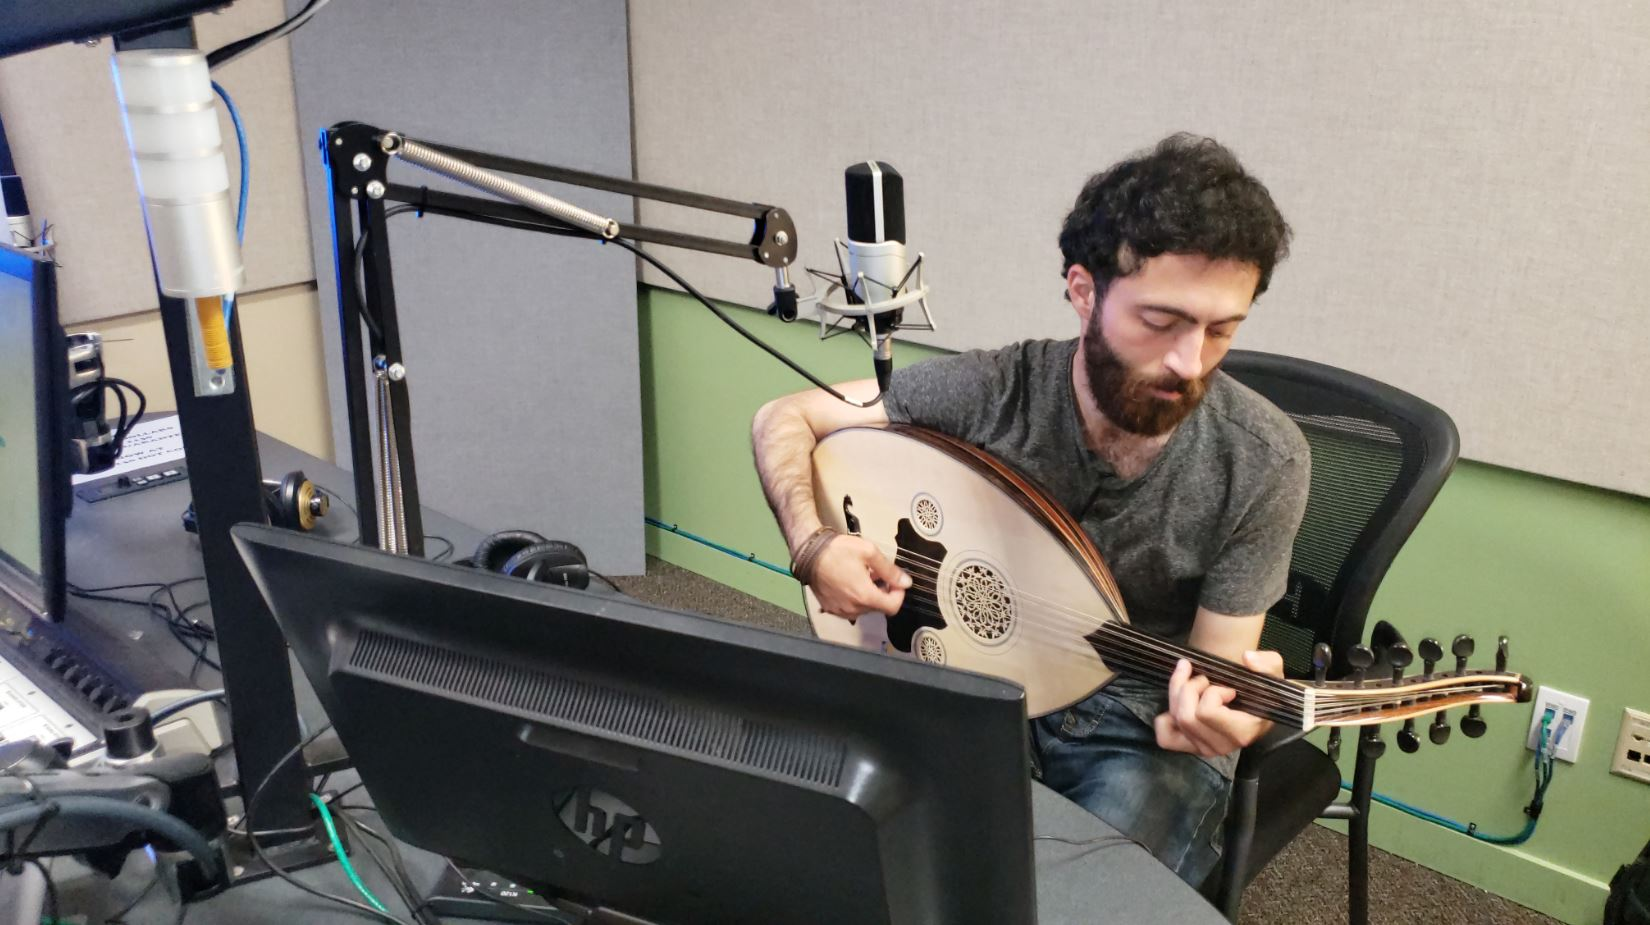 My message in music is to deliver peace in the world:' Syrian